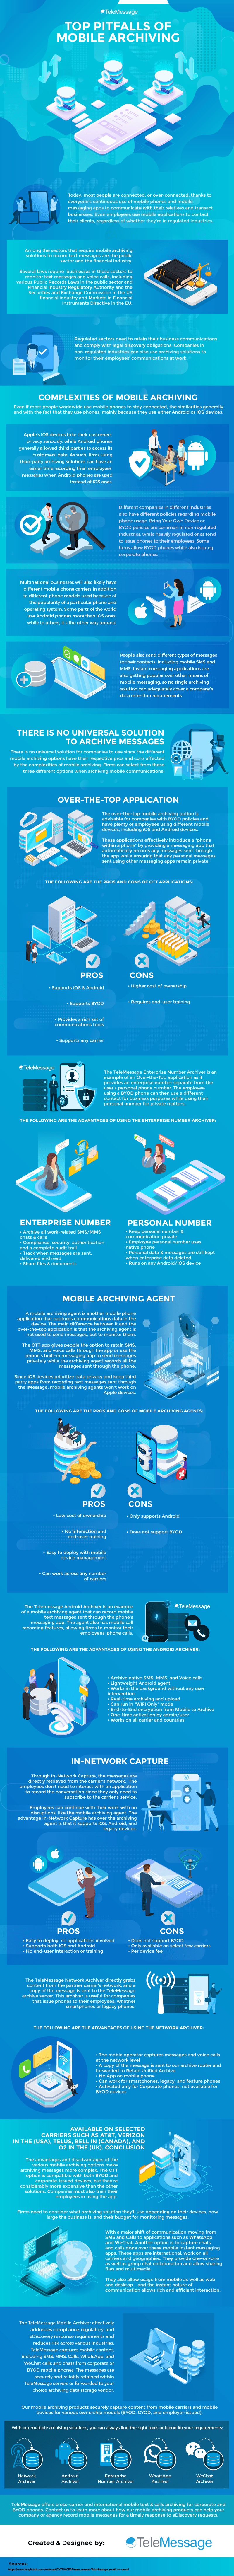 mobile archiving